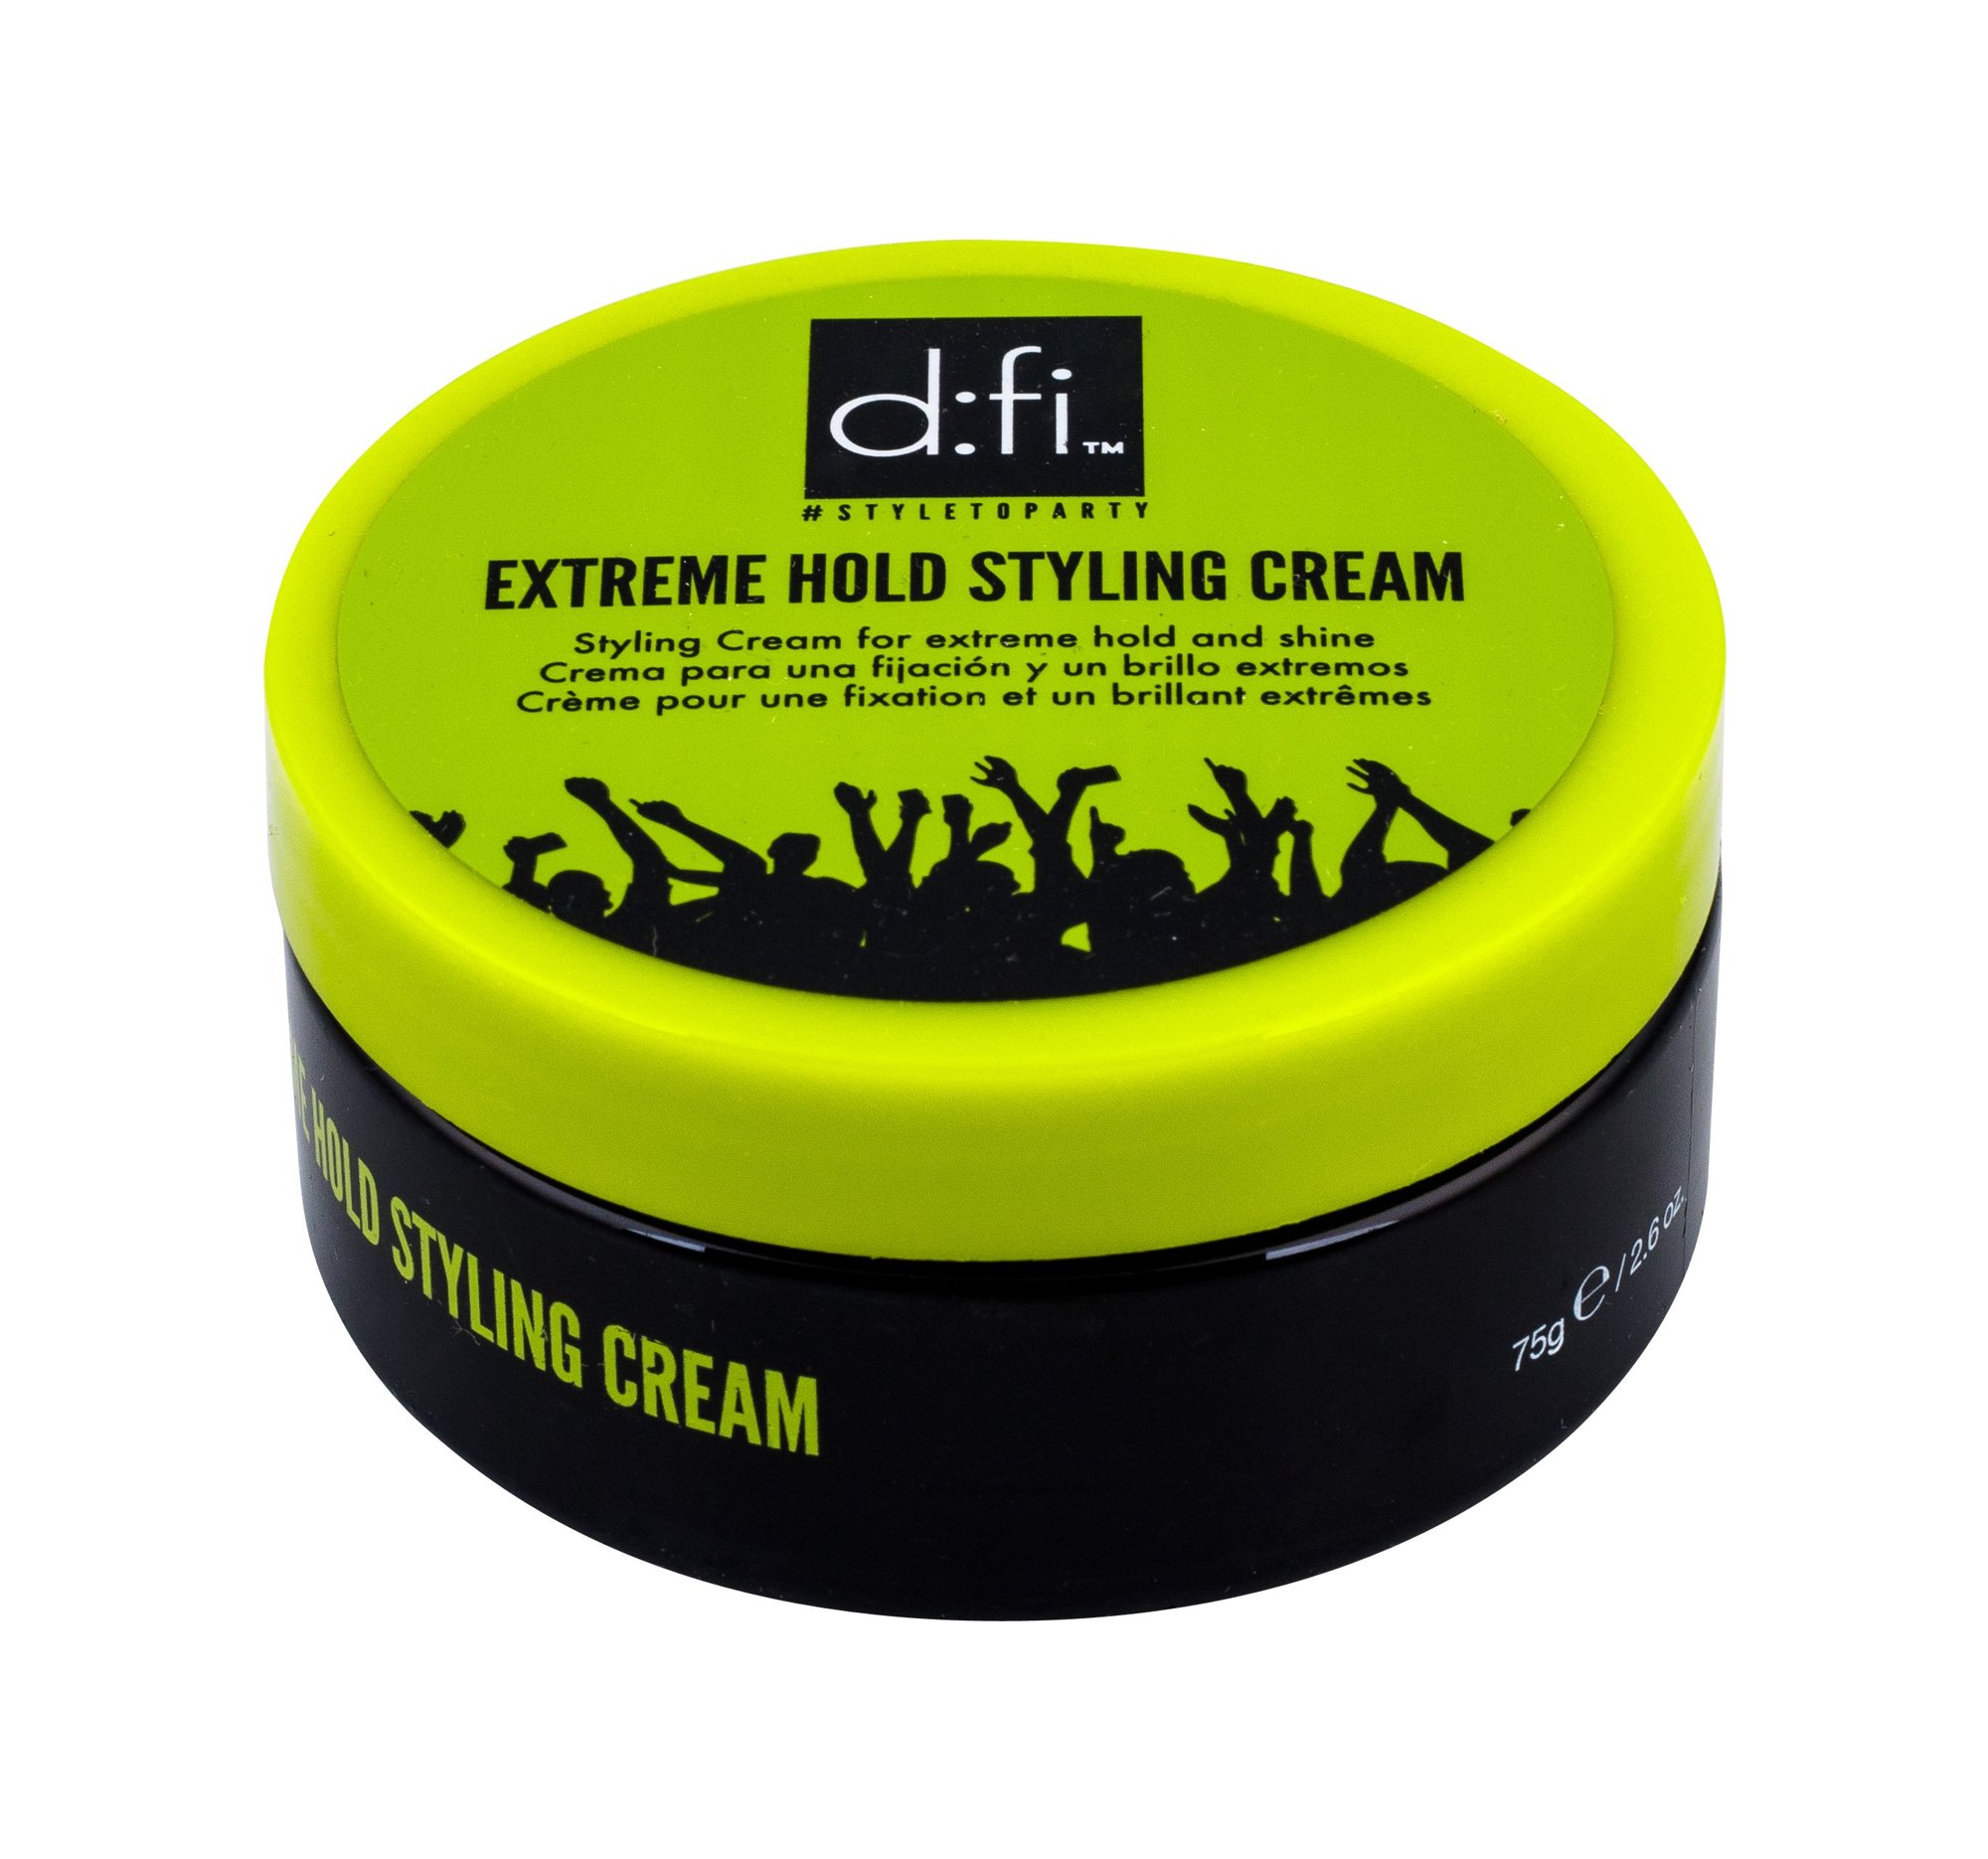 Revlon Professional d:fi Hair Cream 75ml